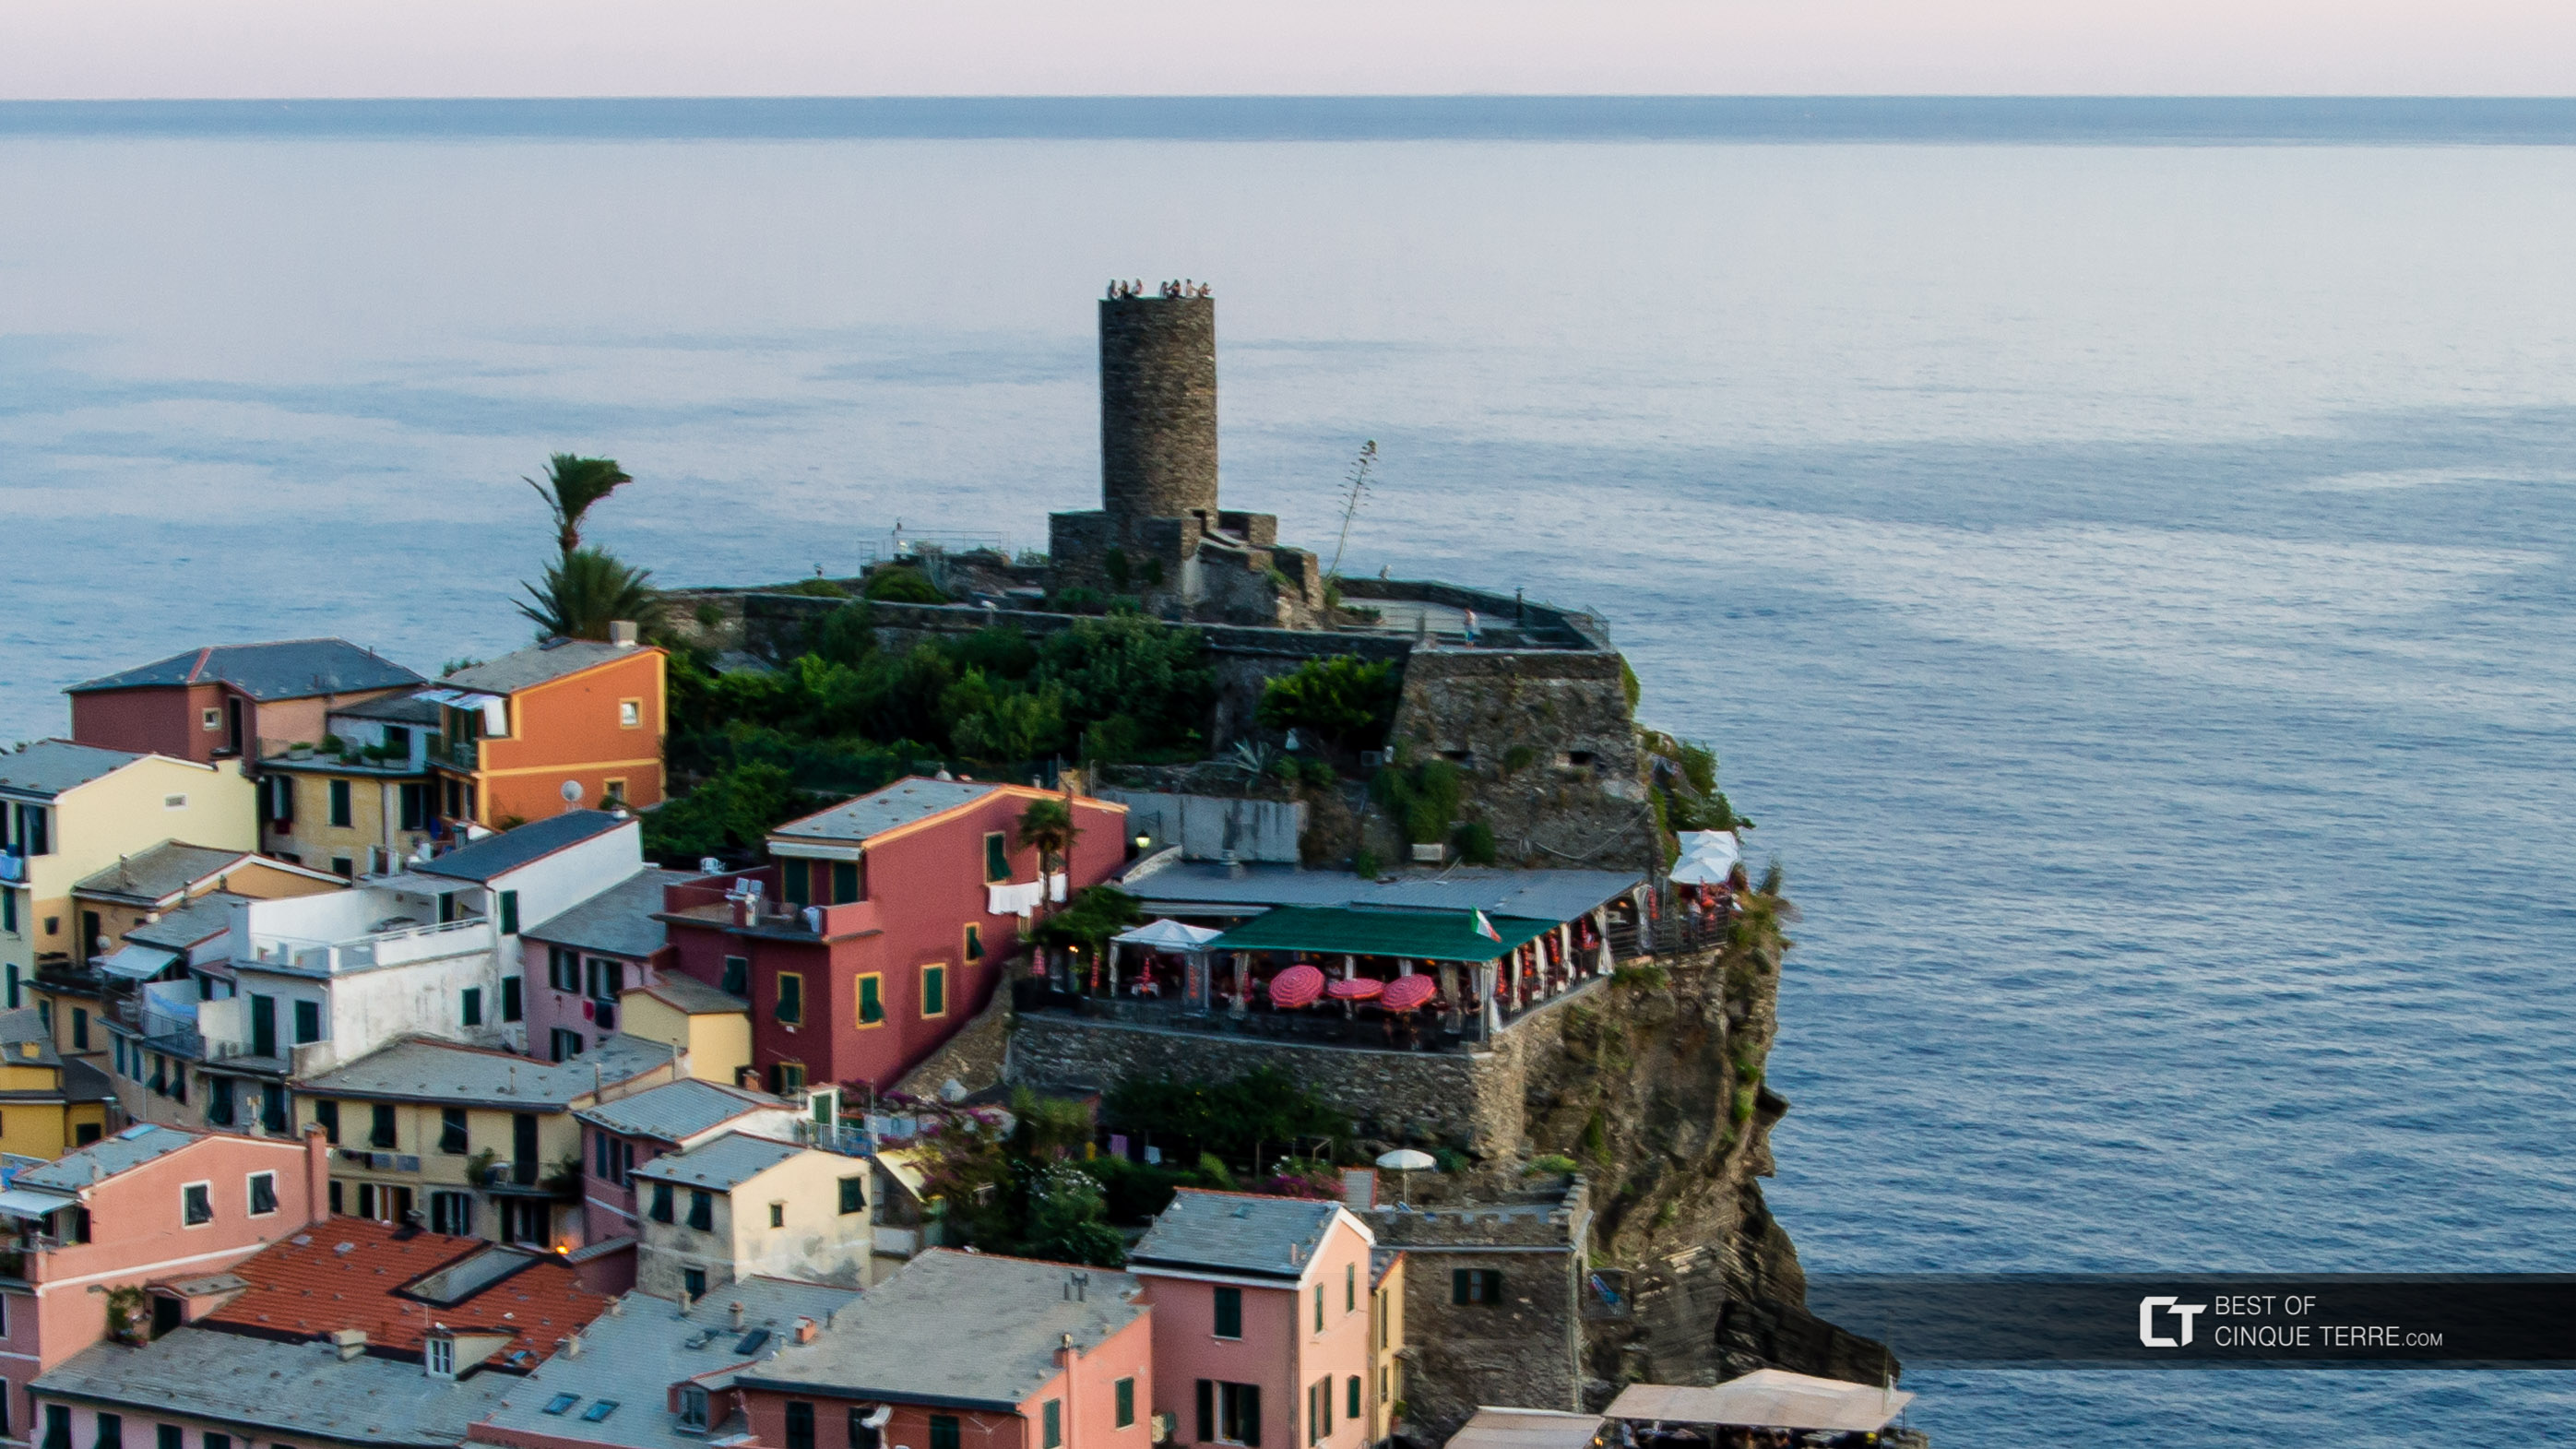 Tourists on Belforte Tower, Vernazza, Cinque Terre, Italy